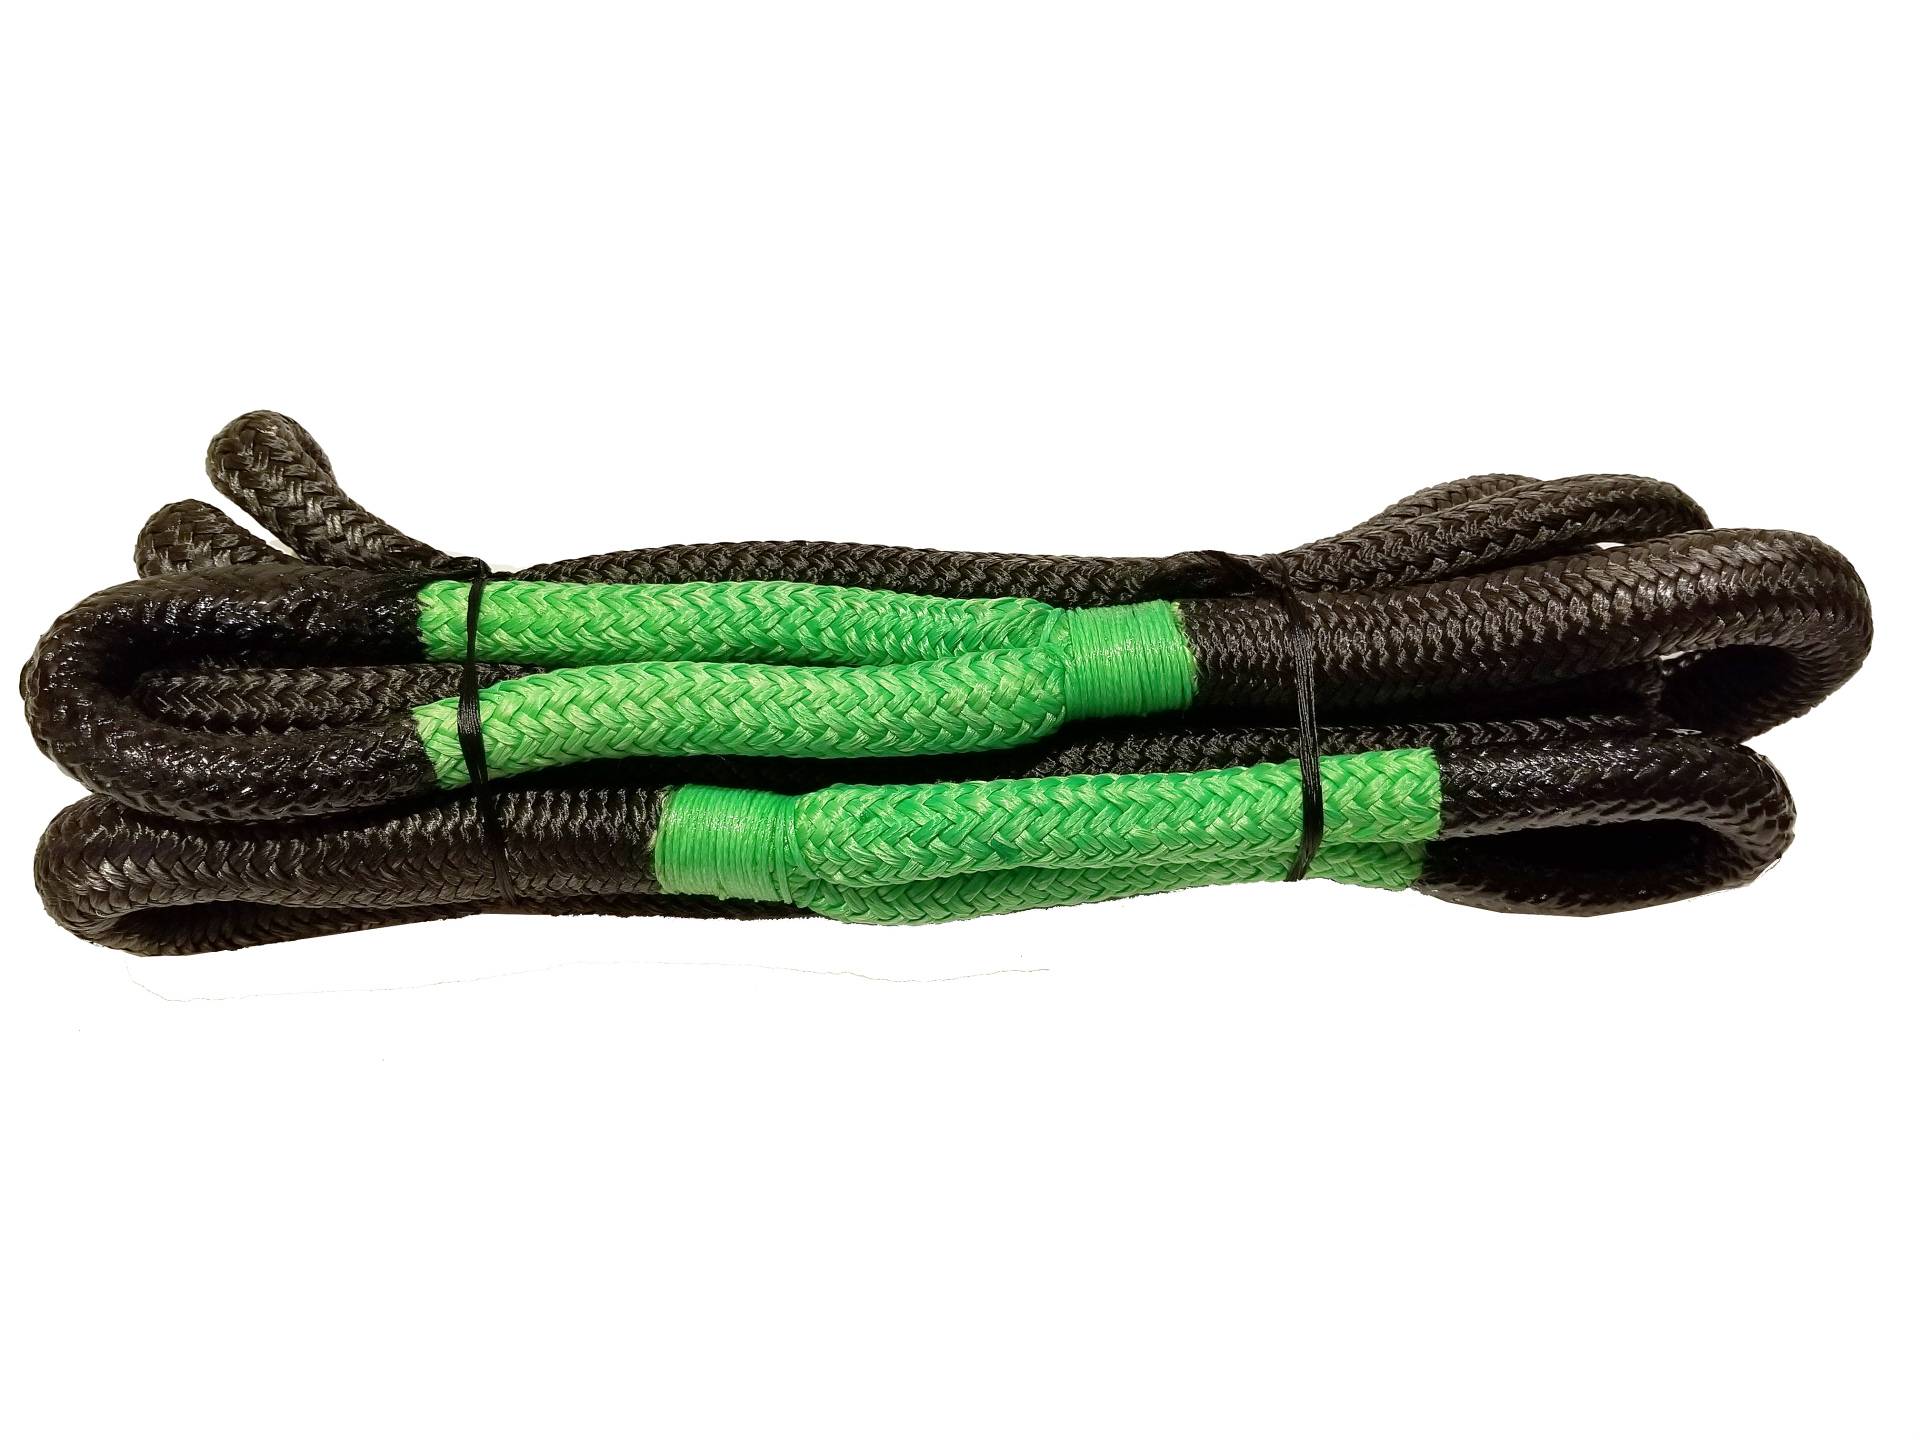 3/4 X 20 Kinetic Rope Black with Green